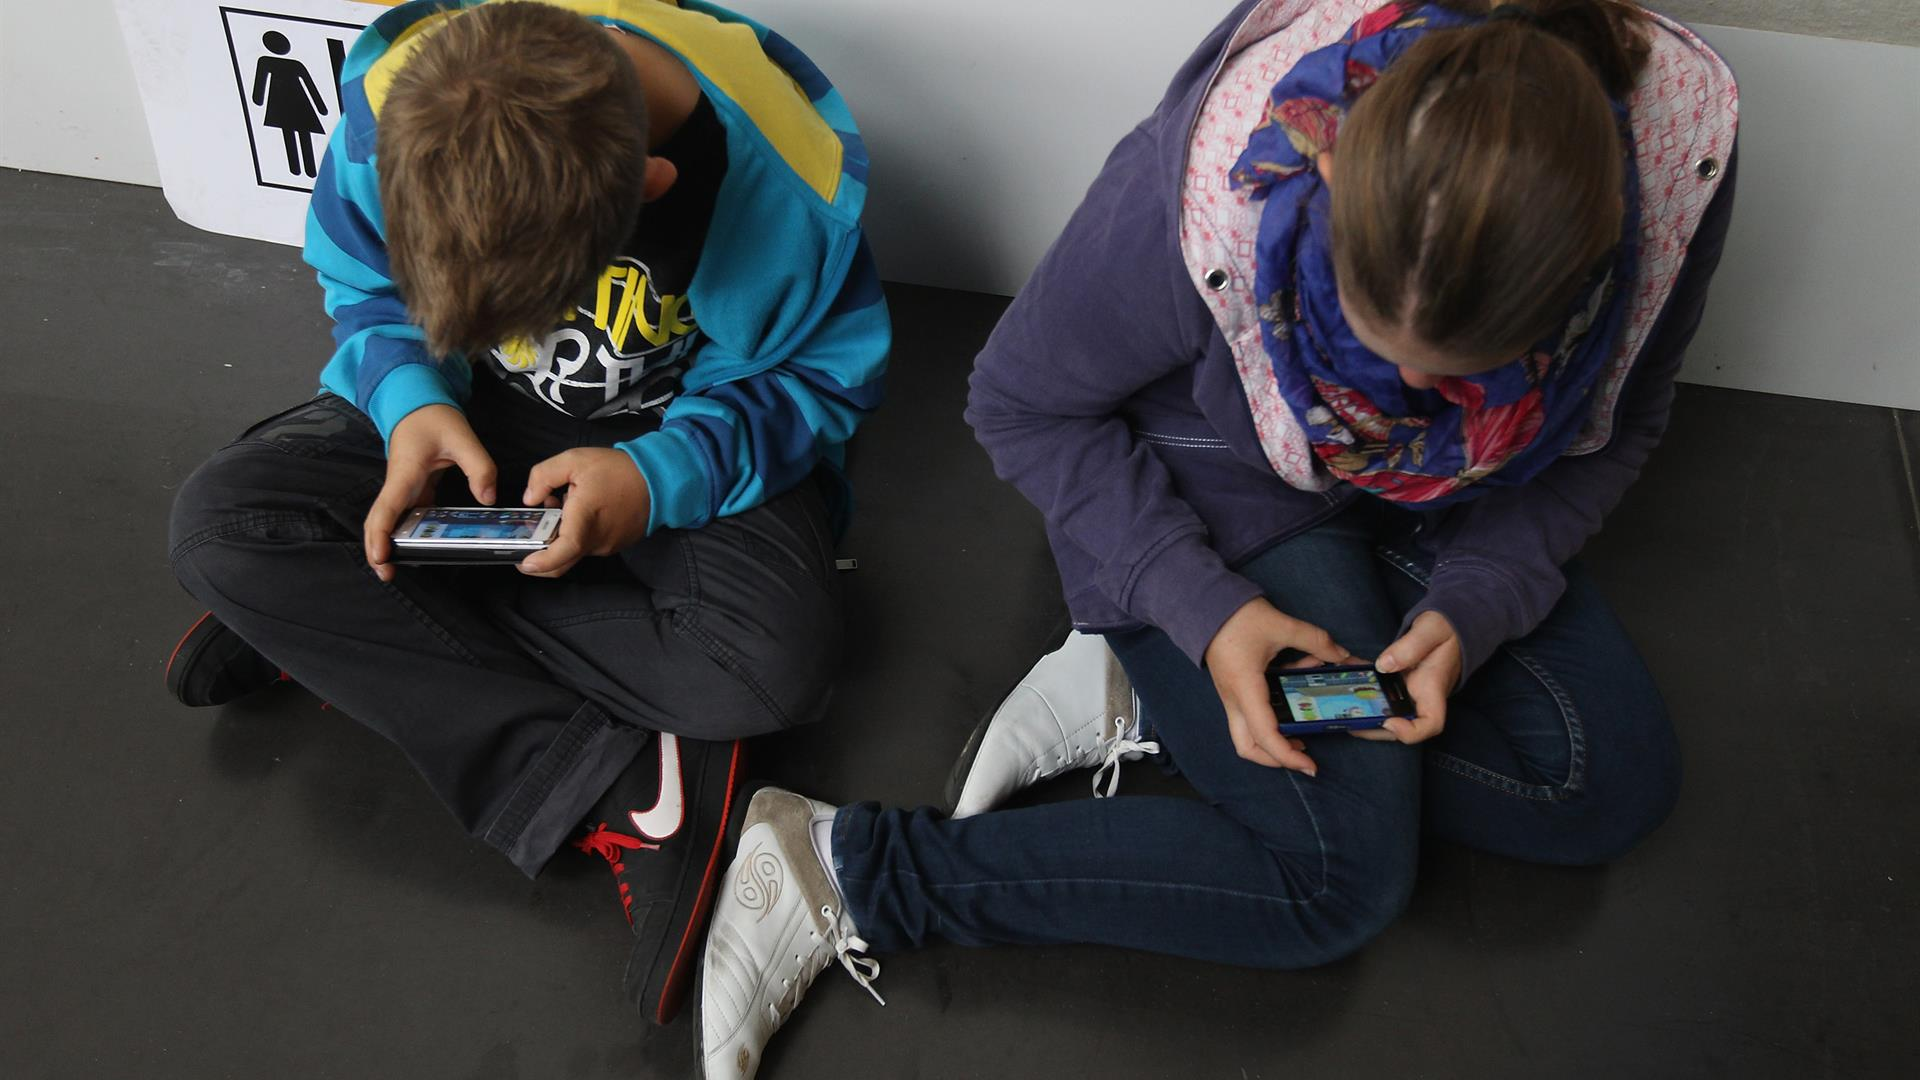 Teenagers Smartphone Sean Gallup:Getty Images)